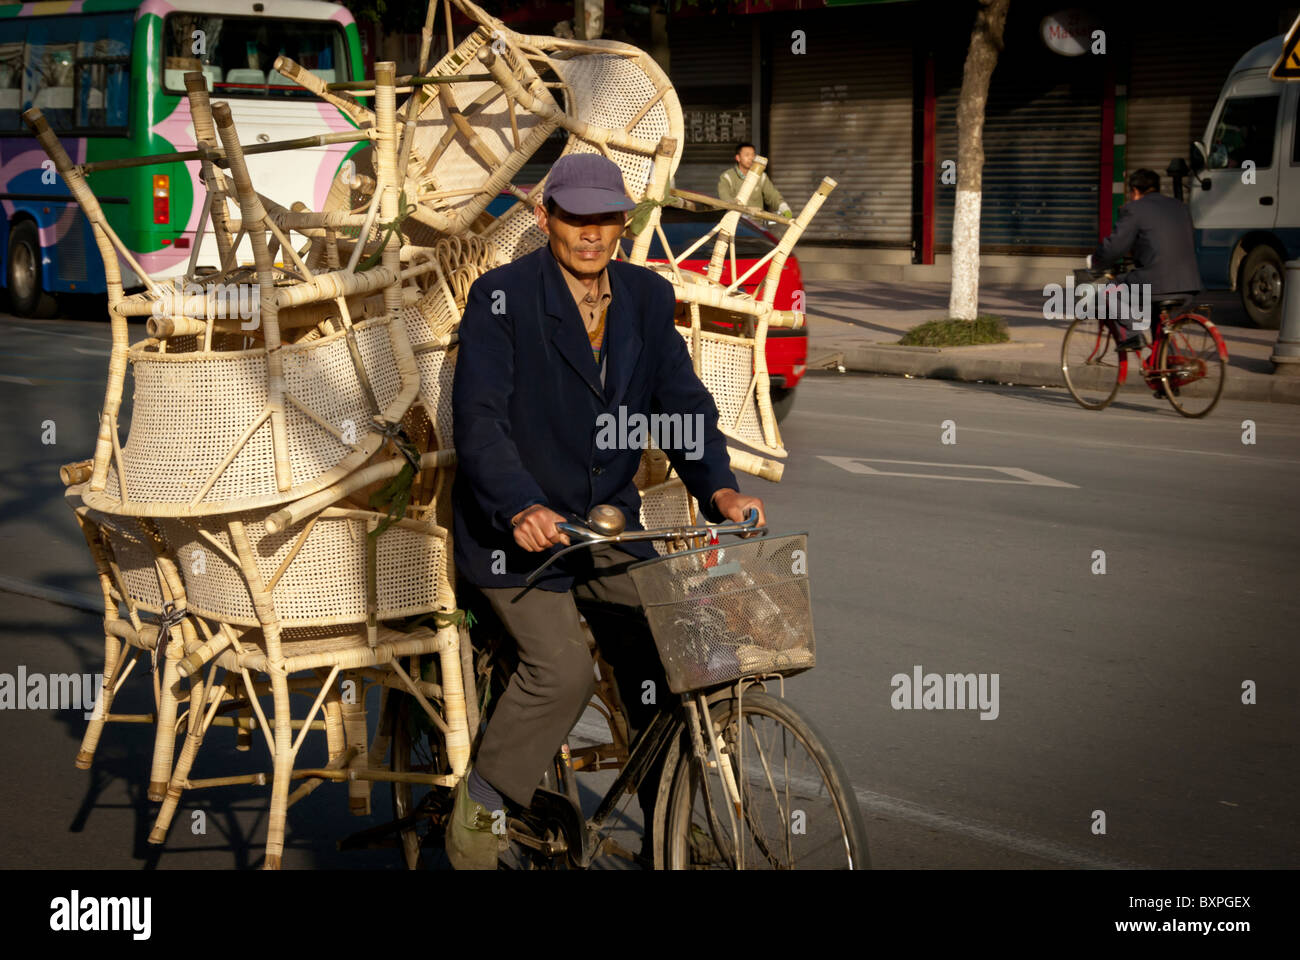 transport-in-suzhou-china-on-a-busy-main